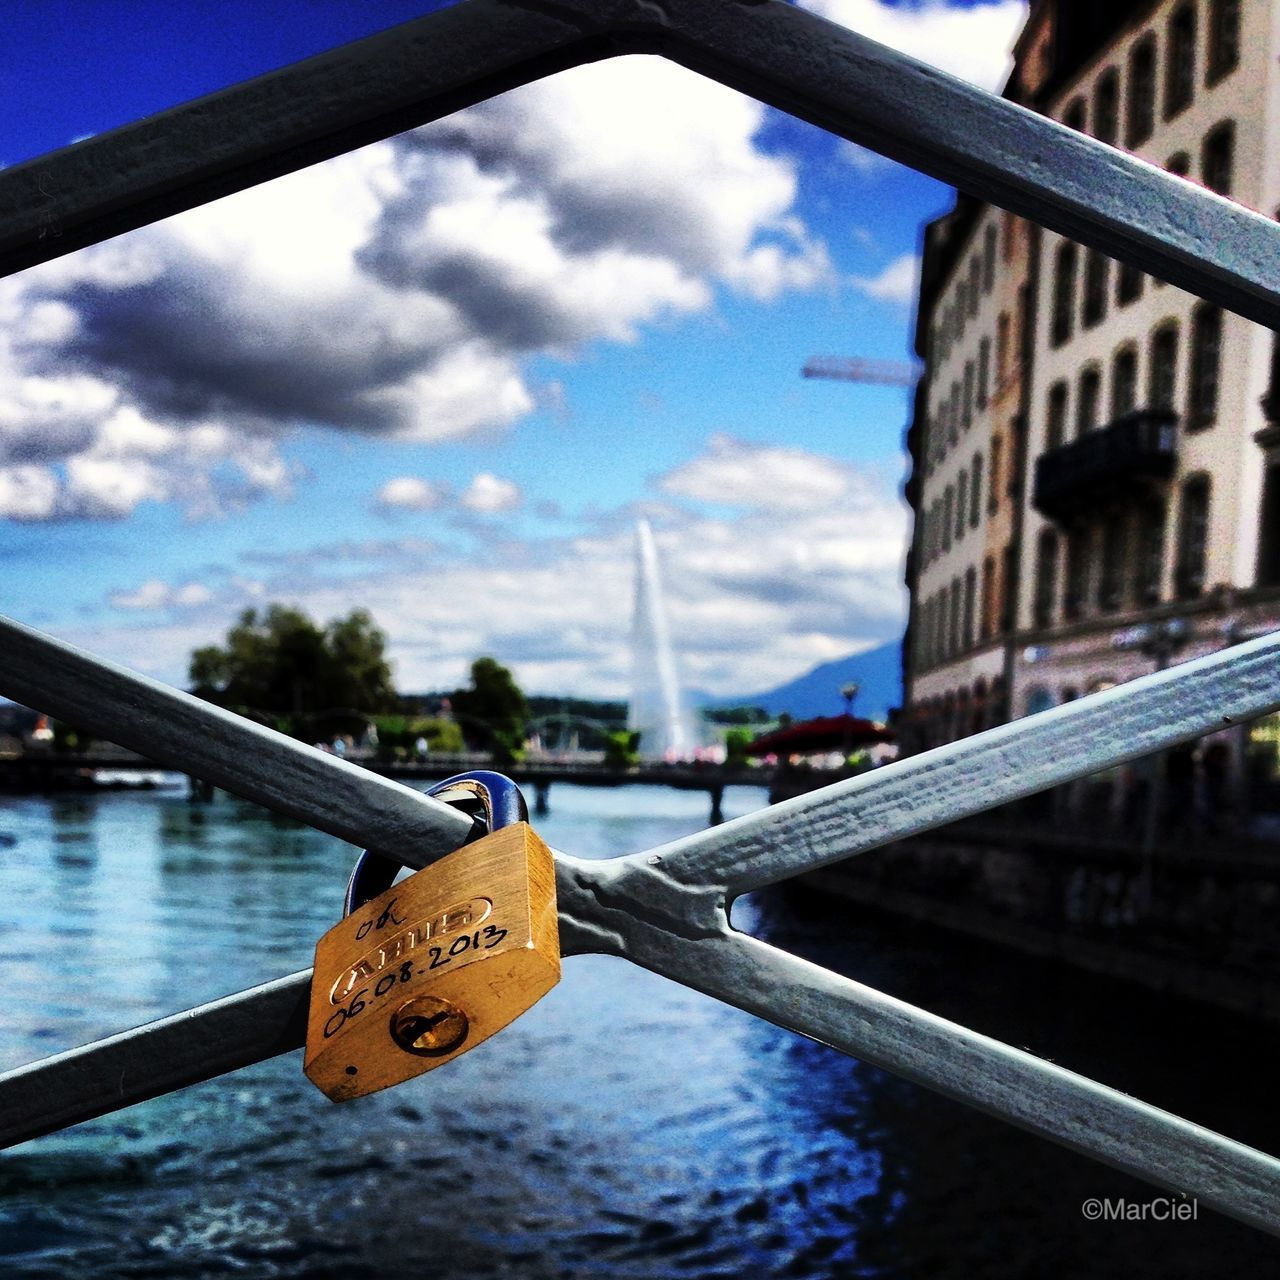 padlock, love lock, lock, water, security, safety, river, protection, railing, love, metal, bridge - man made structure, text, day, sky, hanging, close-up, focus on foreground, no people, hope, luck, architecture, built structure, outdoors, tree, nautical vessel, nature